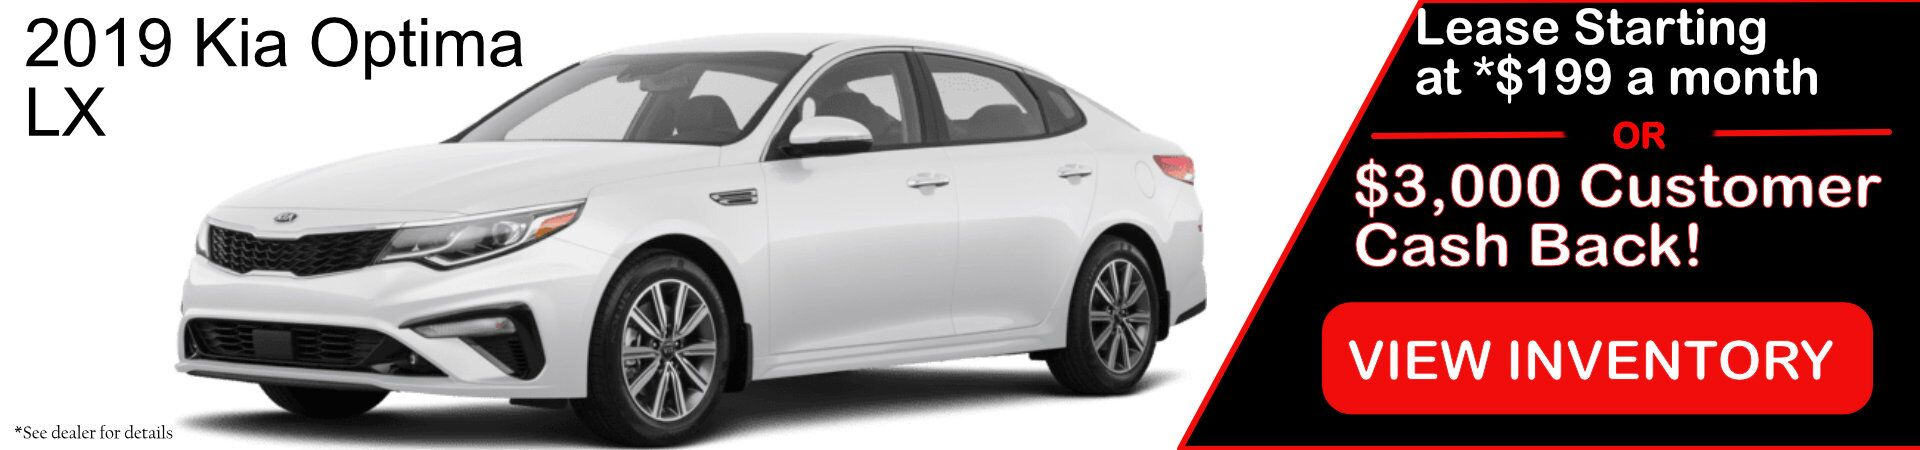 2019 Kia Optima Lease